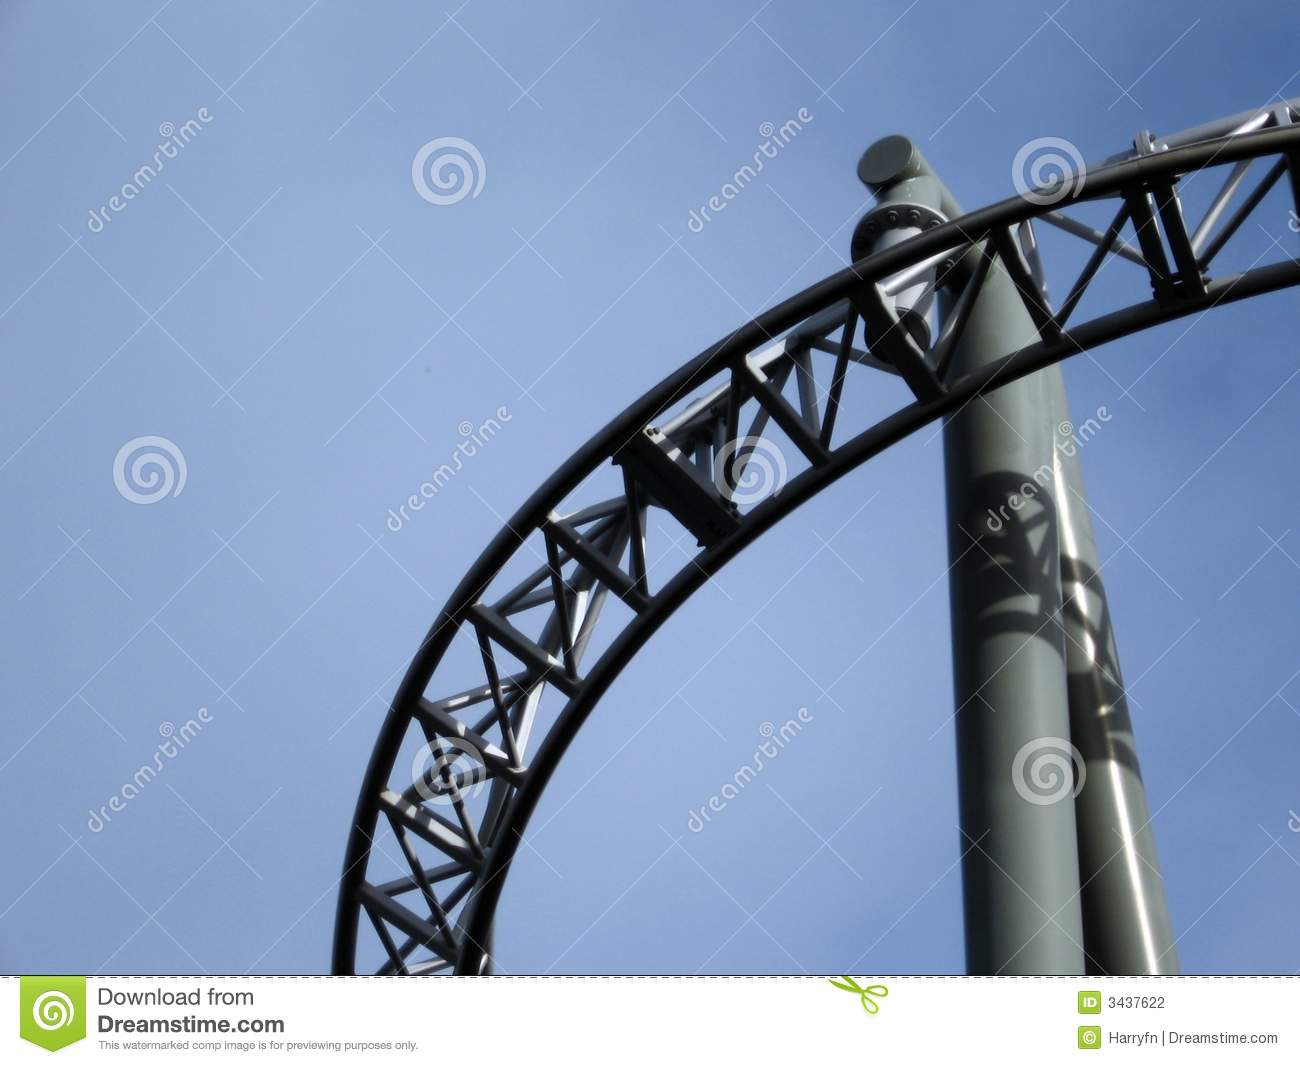 Roller coaster structures stock photography image 3437622 for Structure photography